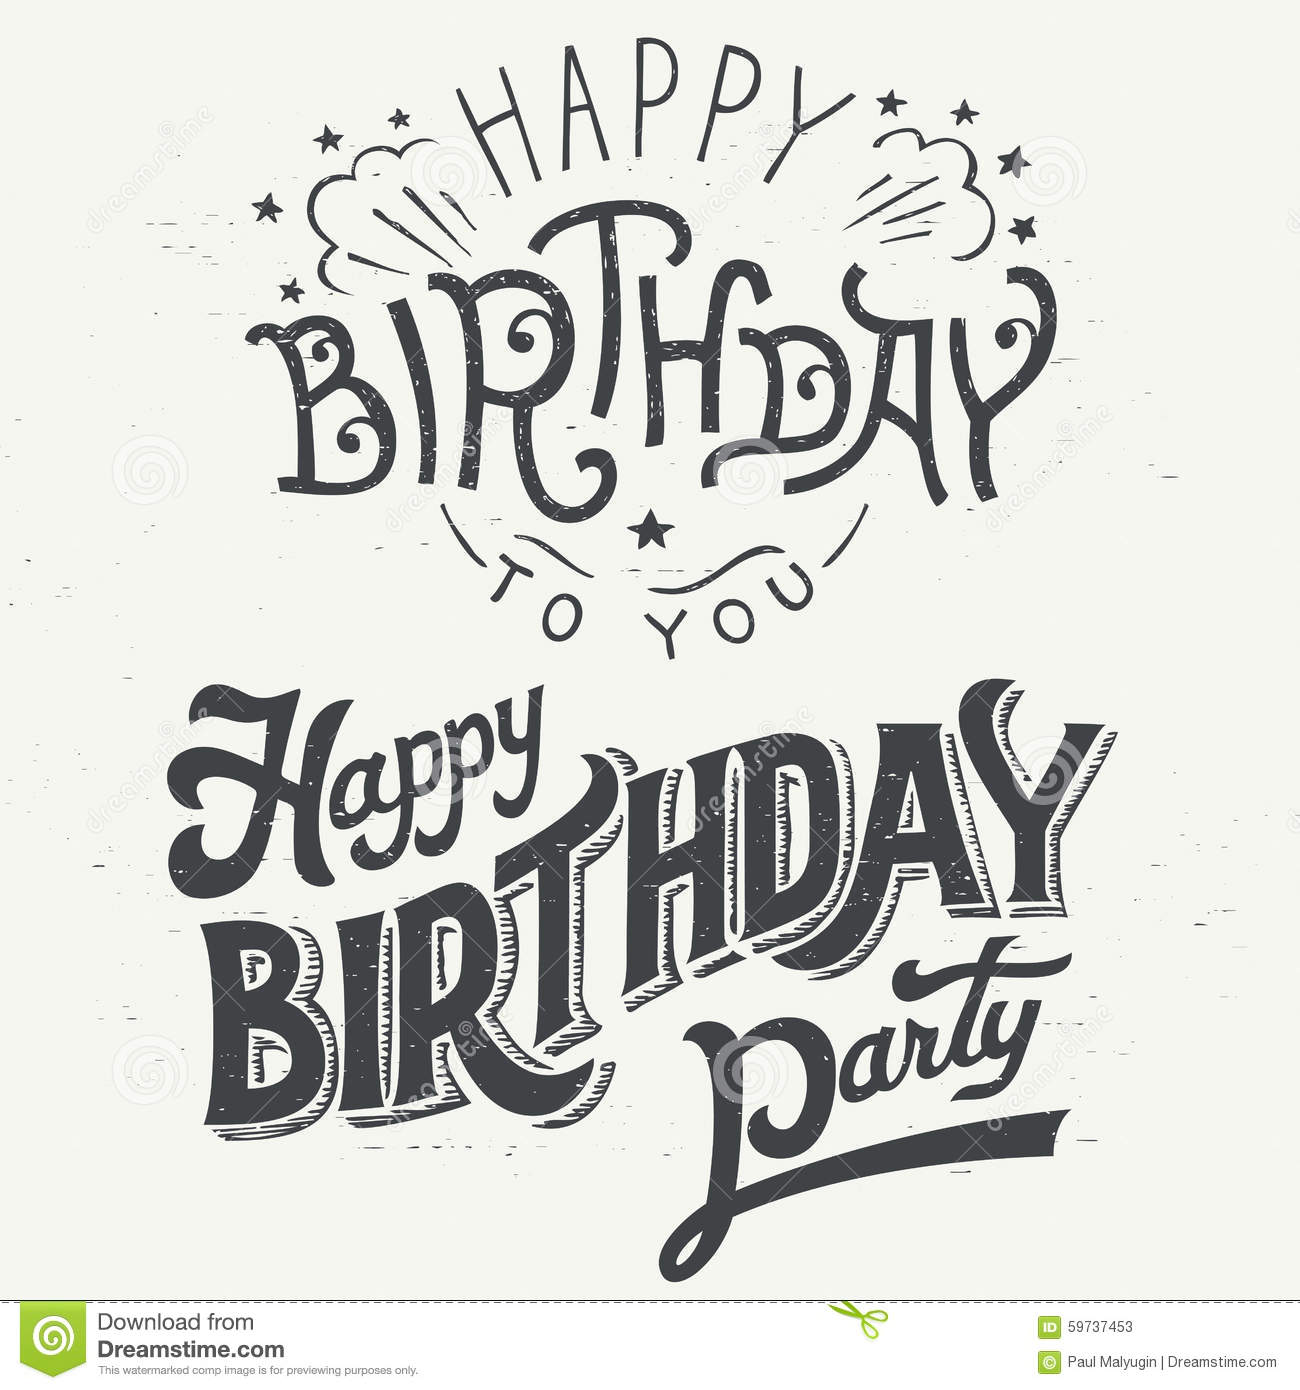 birthday card design drawing ; happy-birthday-hand-drawn-typographic-design-set-greeting-cards-vintage-style-59737453